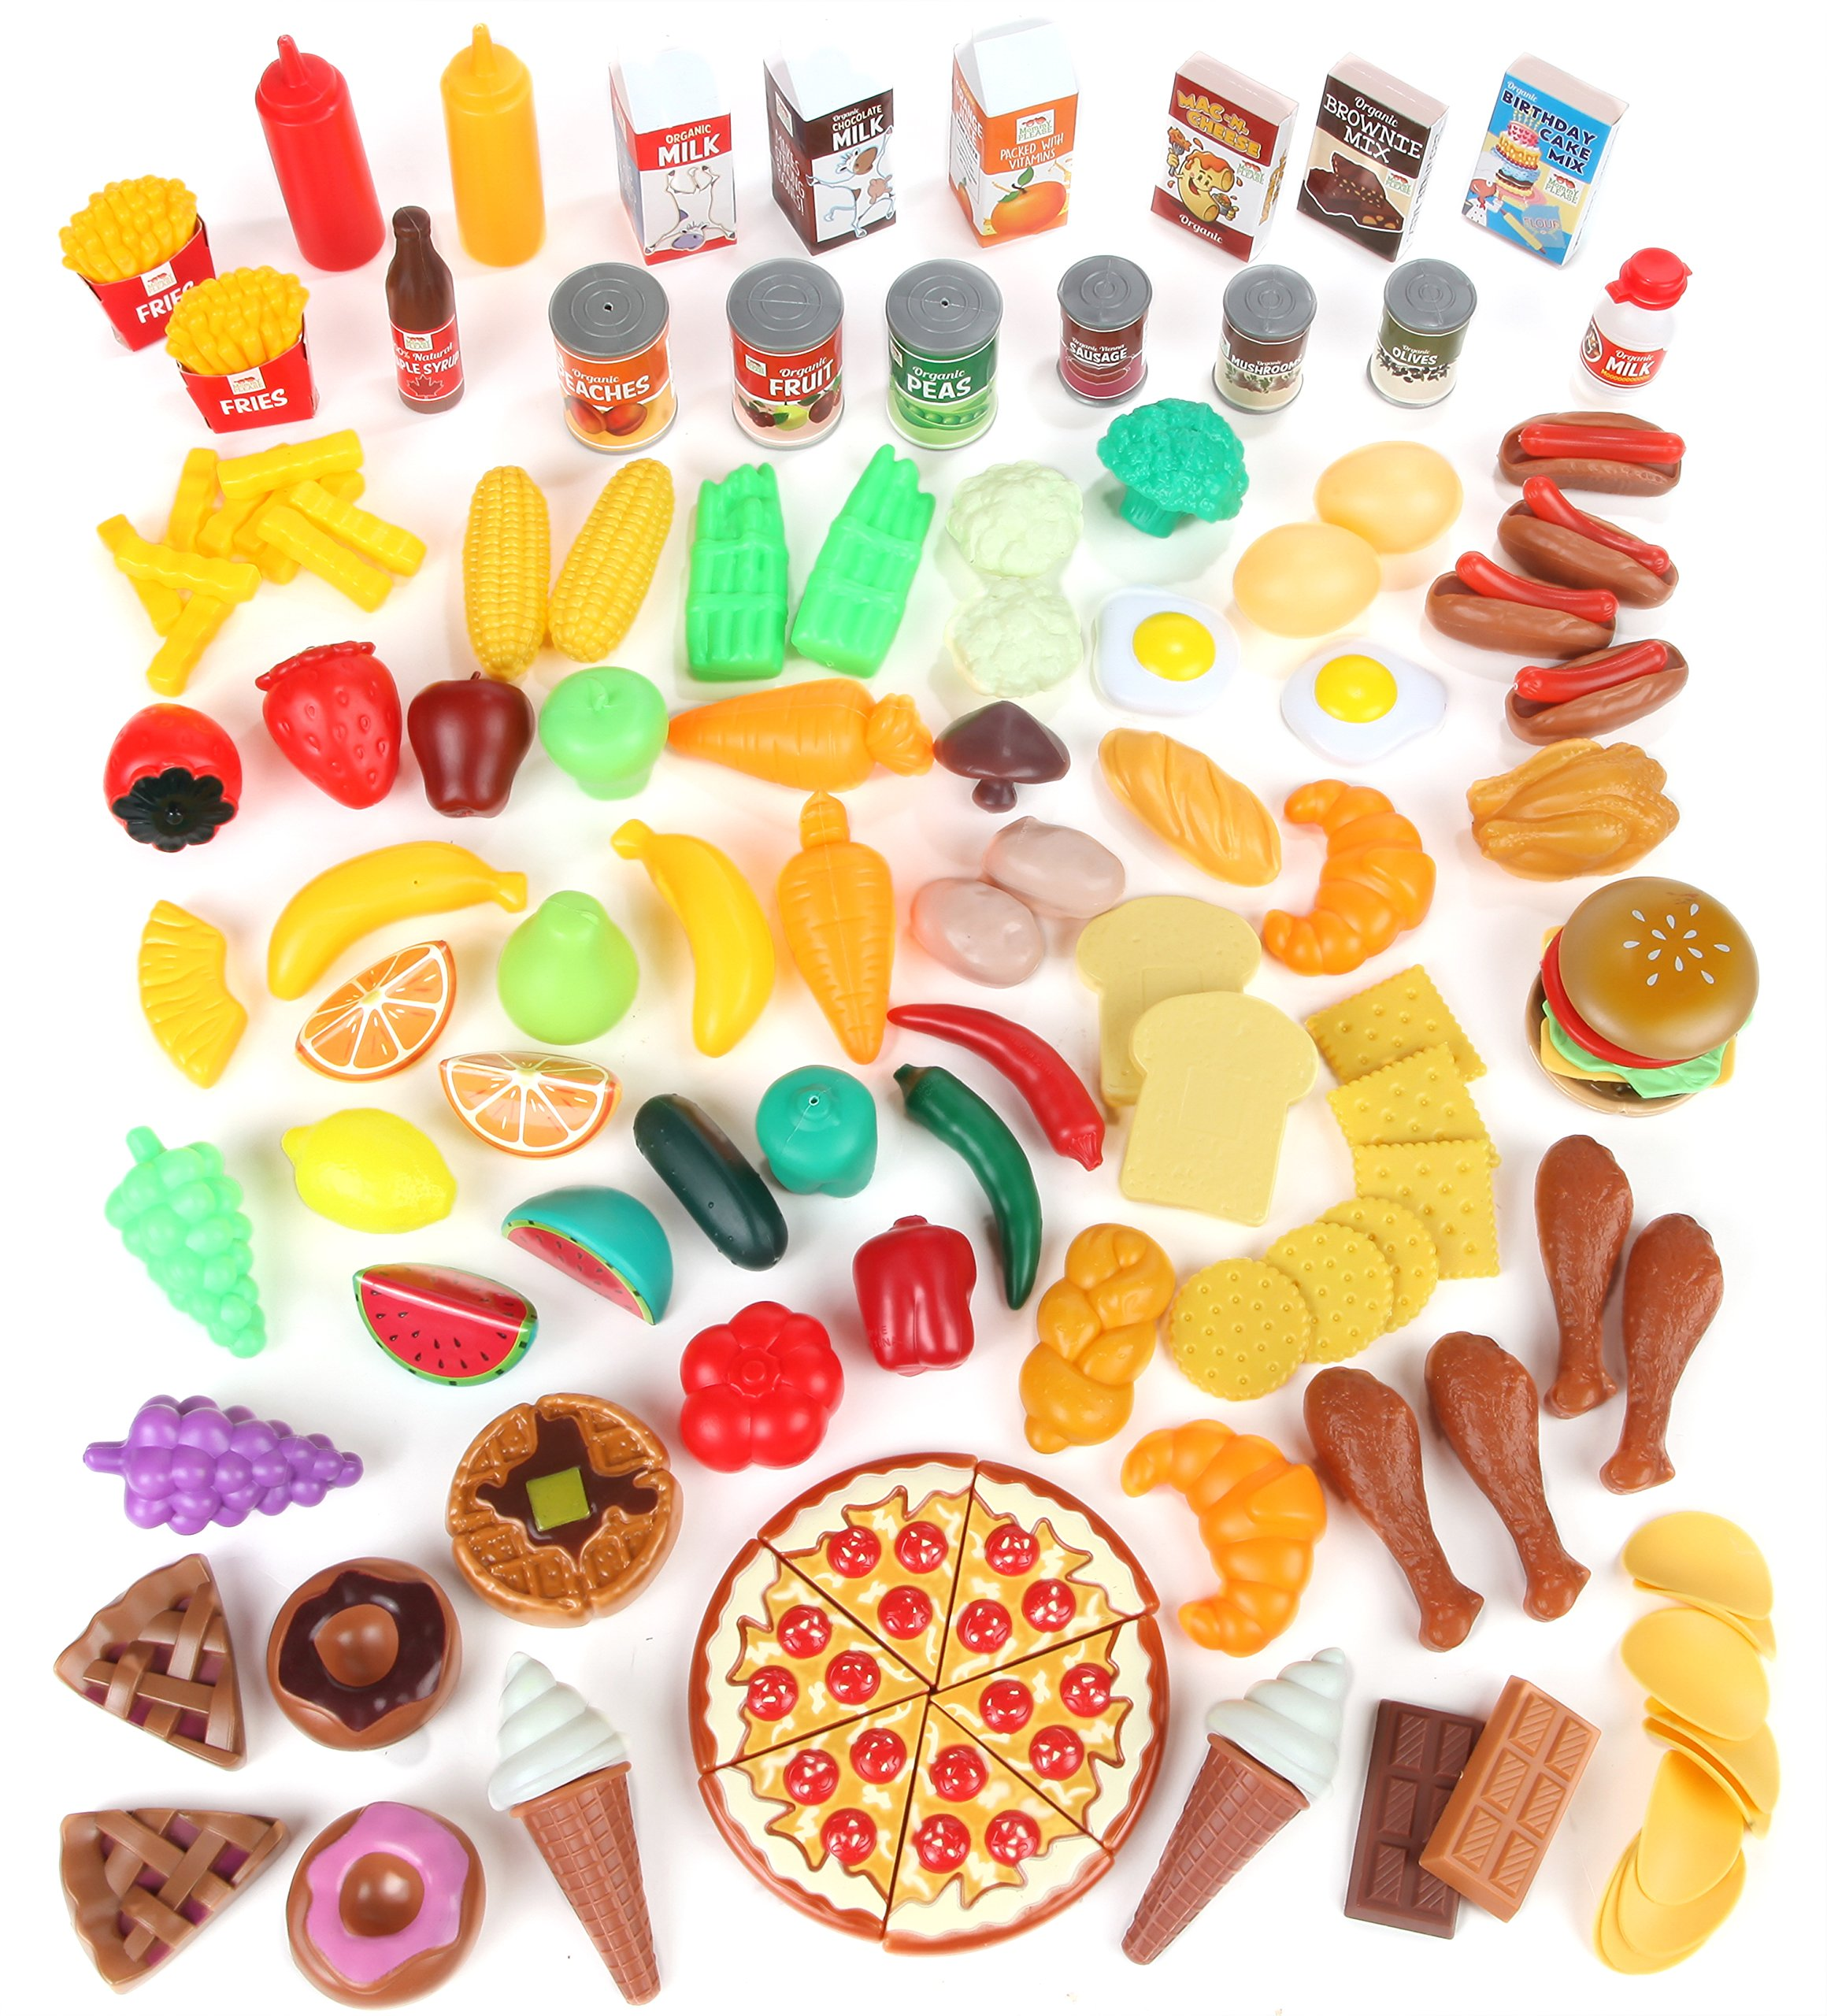 Play Food Set for Kids & Toy Food for Pretend Play - Huge 125 Piece Play Kitchen Set with Childrens Educational Food Toys for Toddlers Inspires Imagination - Fake Plastic Foods for Cooking Edition 1 by Mommy Please